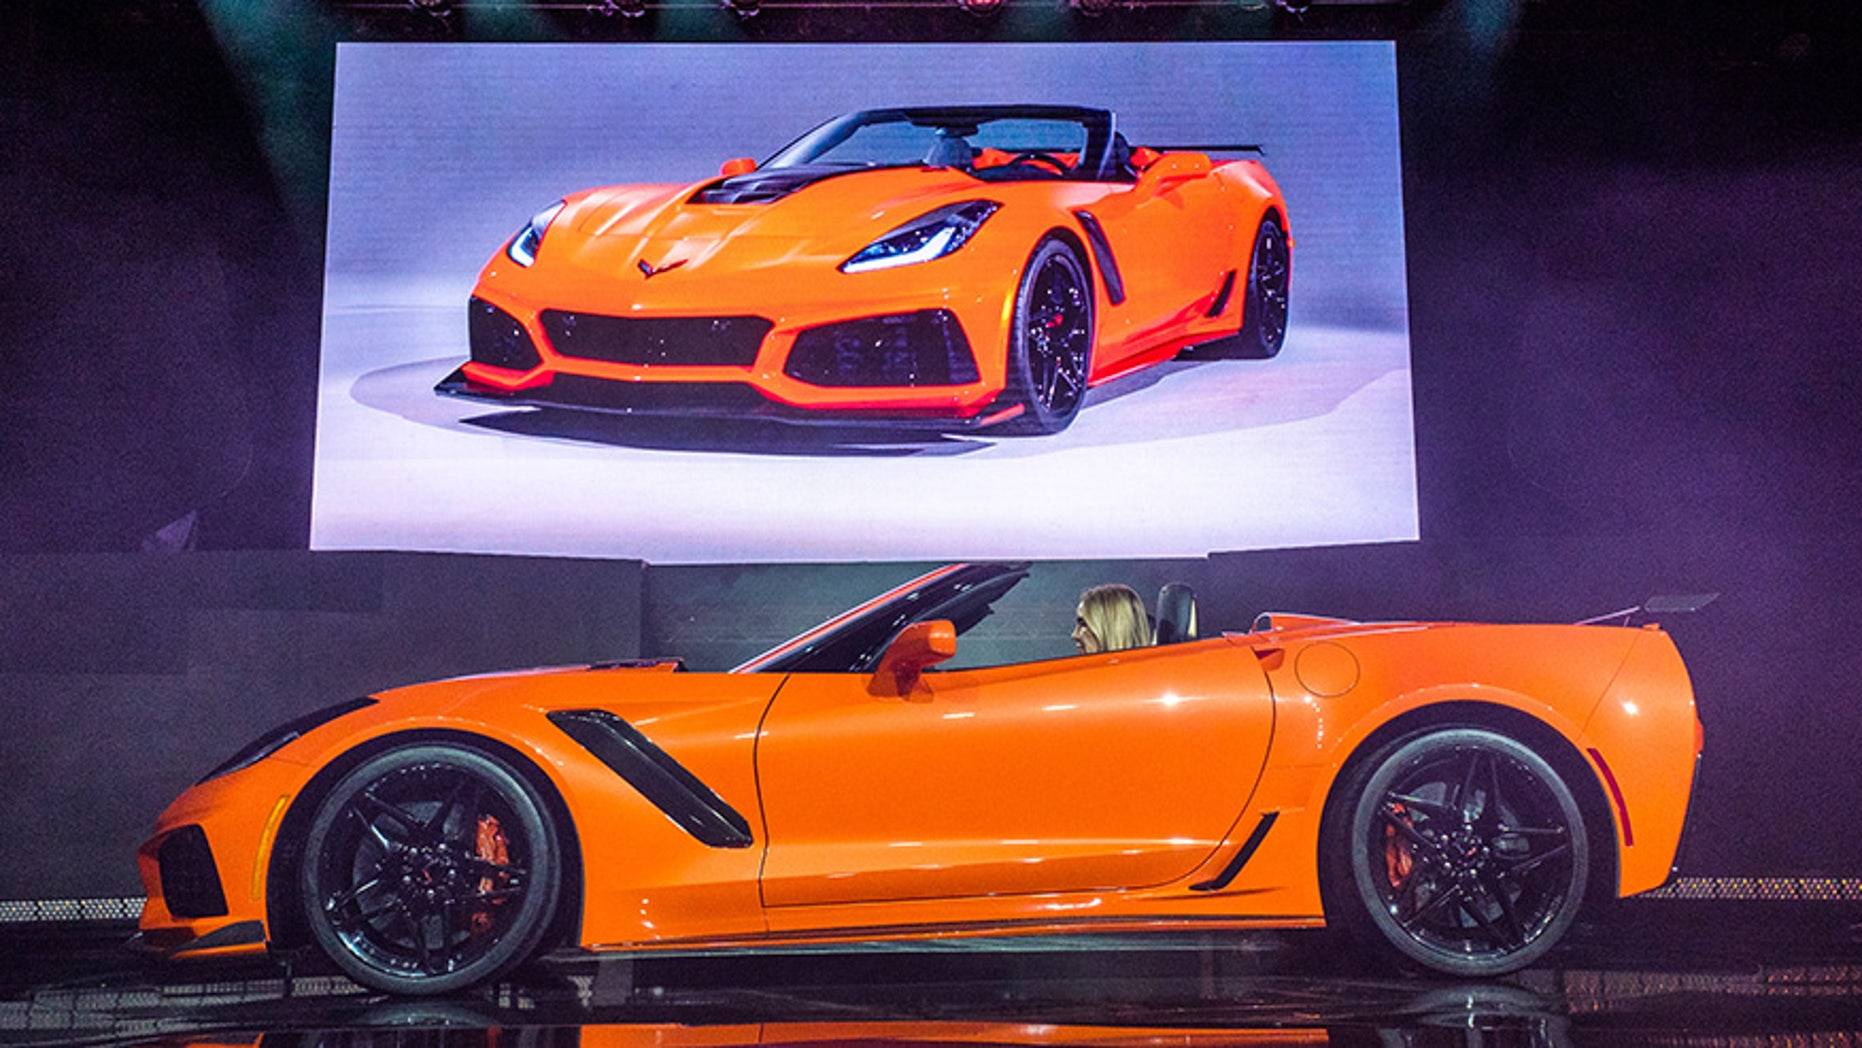 The 2019 Corvette ZR1 Convertible makes its world debut Tuesday, November 28, 2017 in Los Angeles, California. The Corvette ZR1's unique aero package is central to the coupe's 212-mph top speed generated by the 755 horsepower LT5 6.2L supercharged engine. The ZR1 convertible will start at $123,995 and will go on sale in the spring of 2018. (Photo by Steve Fecht for Chevrolet)